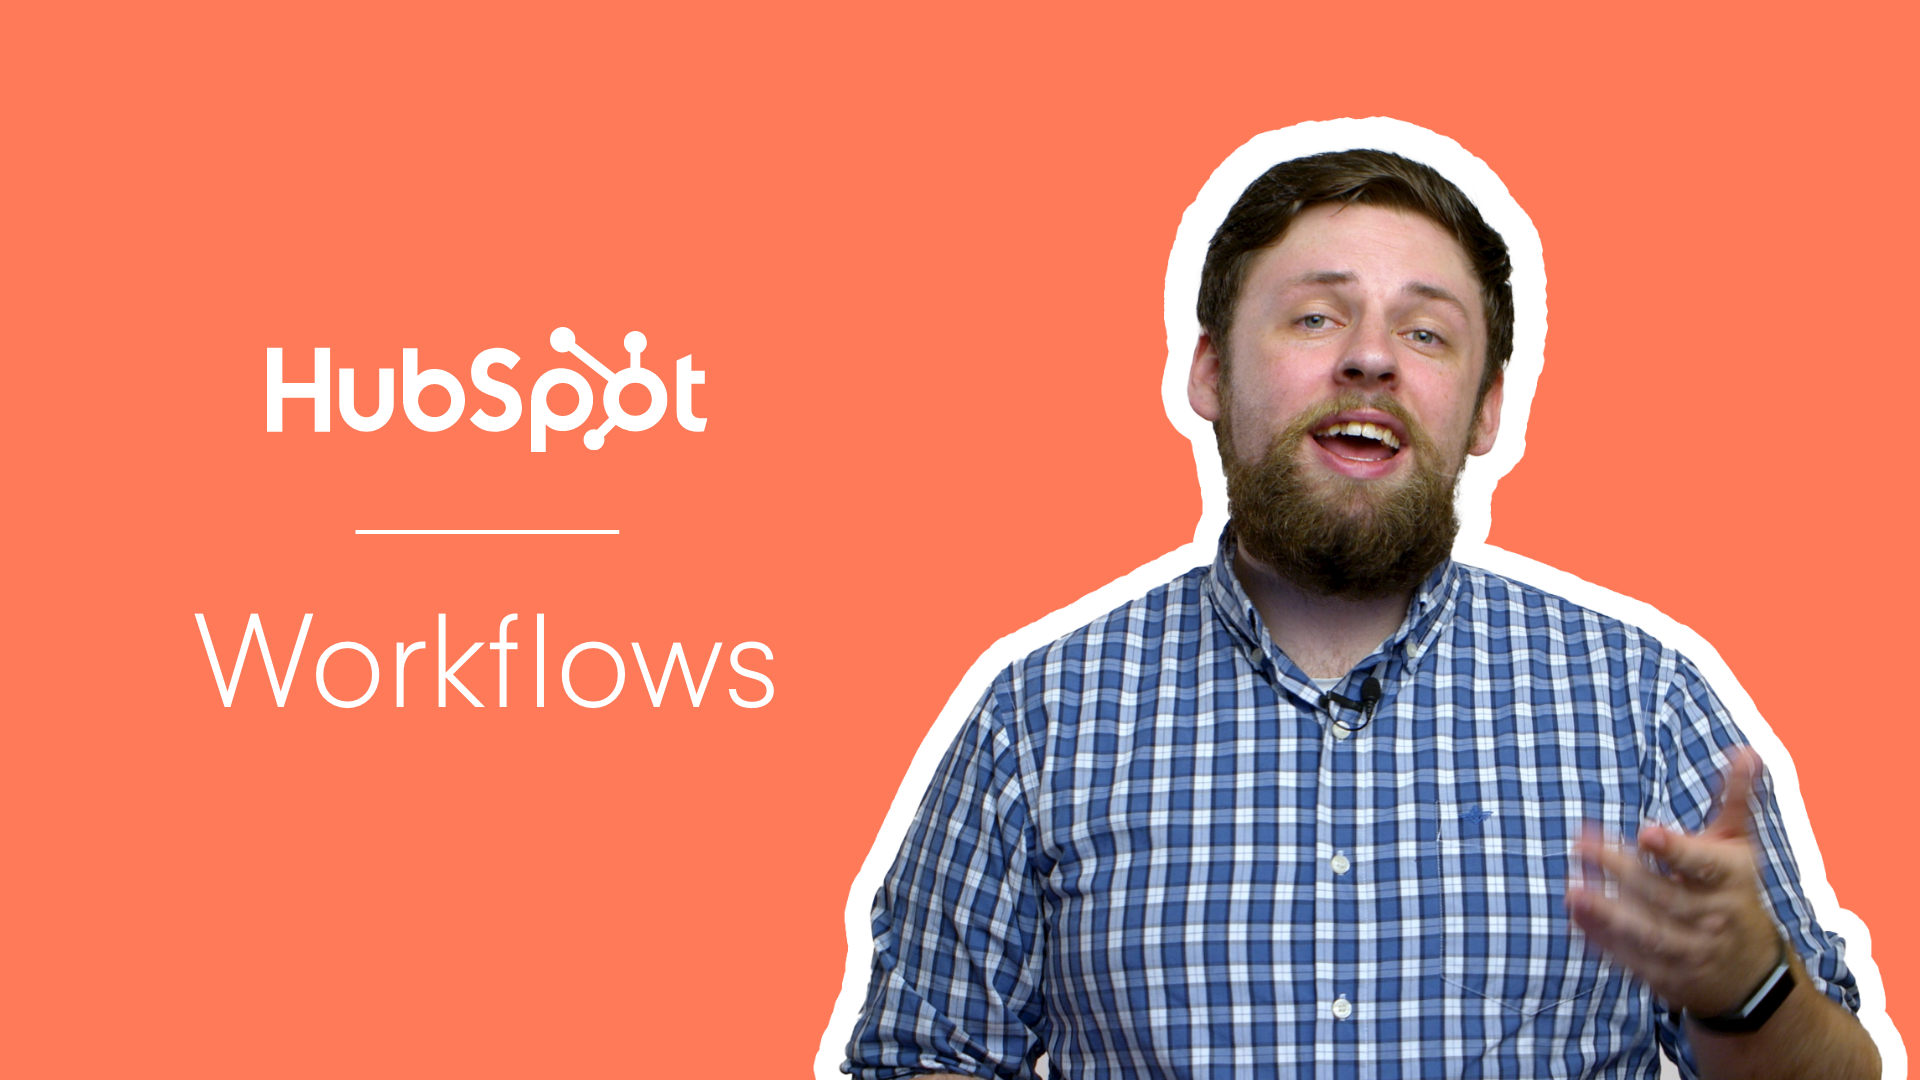 The Basics of Building a HubSpot Workflow